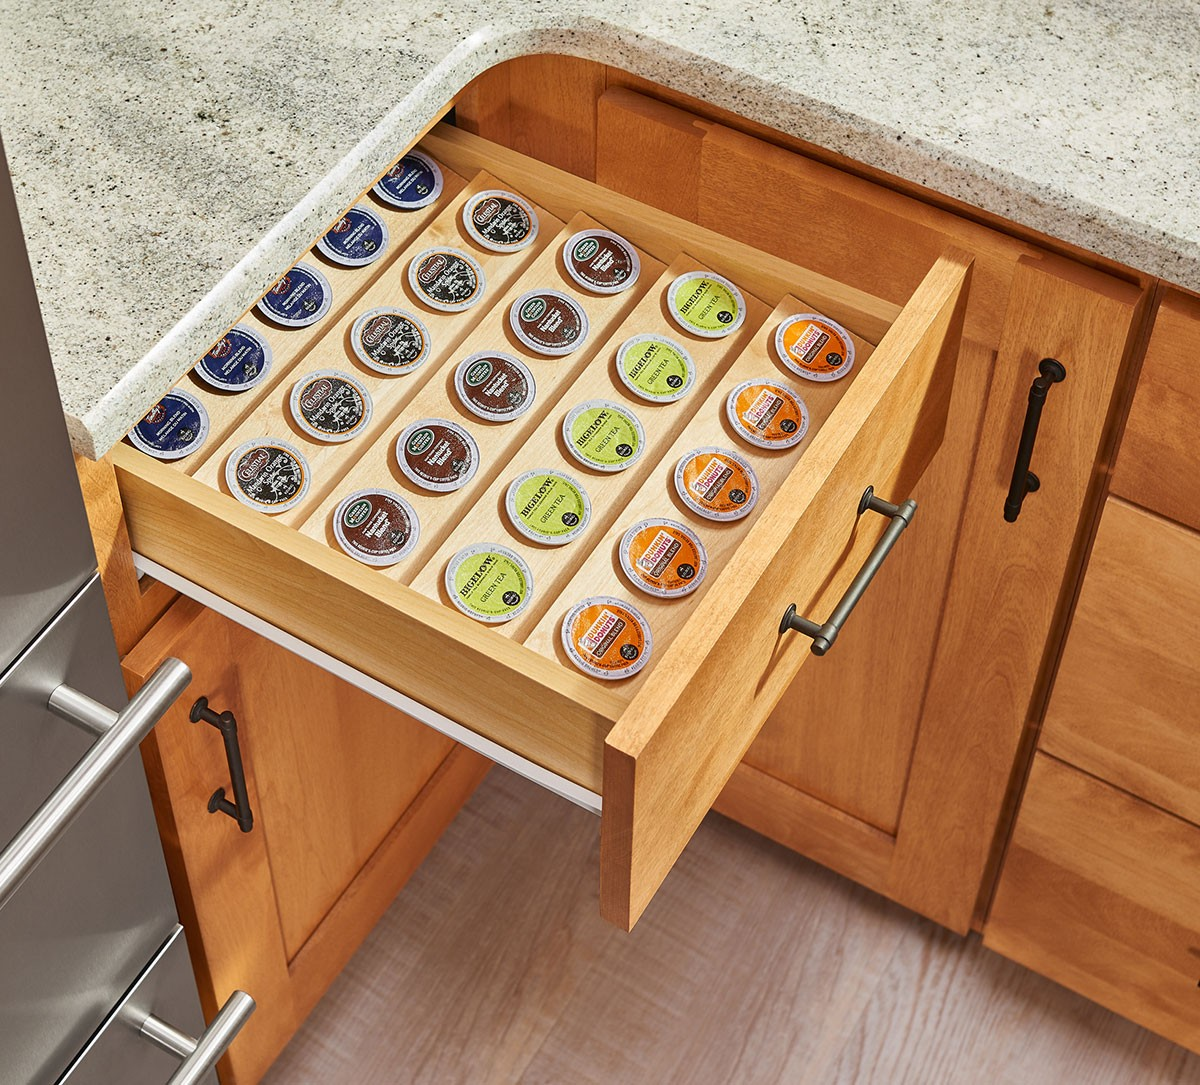 K Cup Tray Insert For 18 Quot Base Cabinet Drawers 4cdi 18